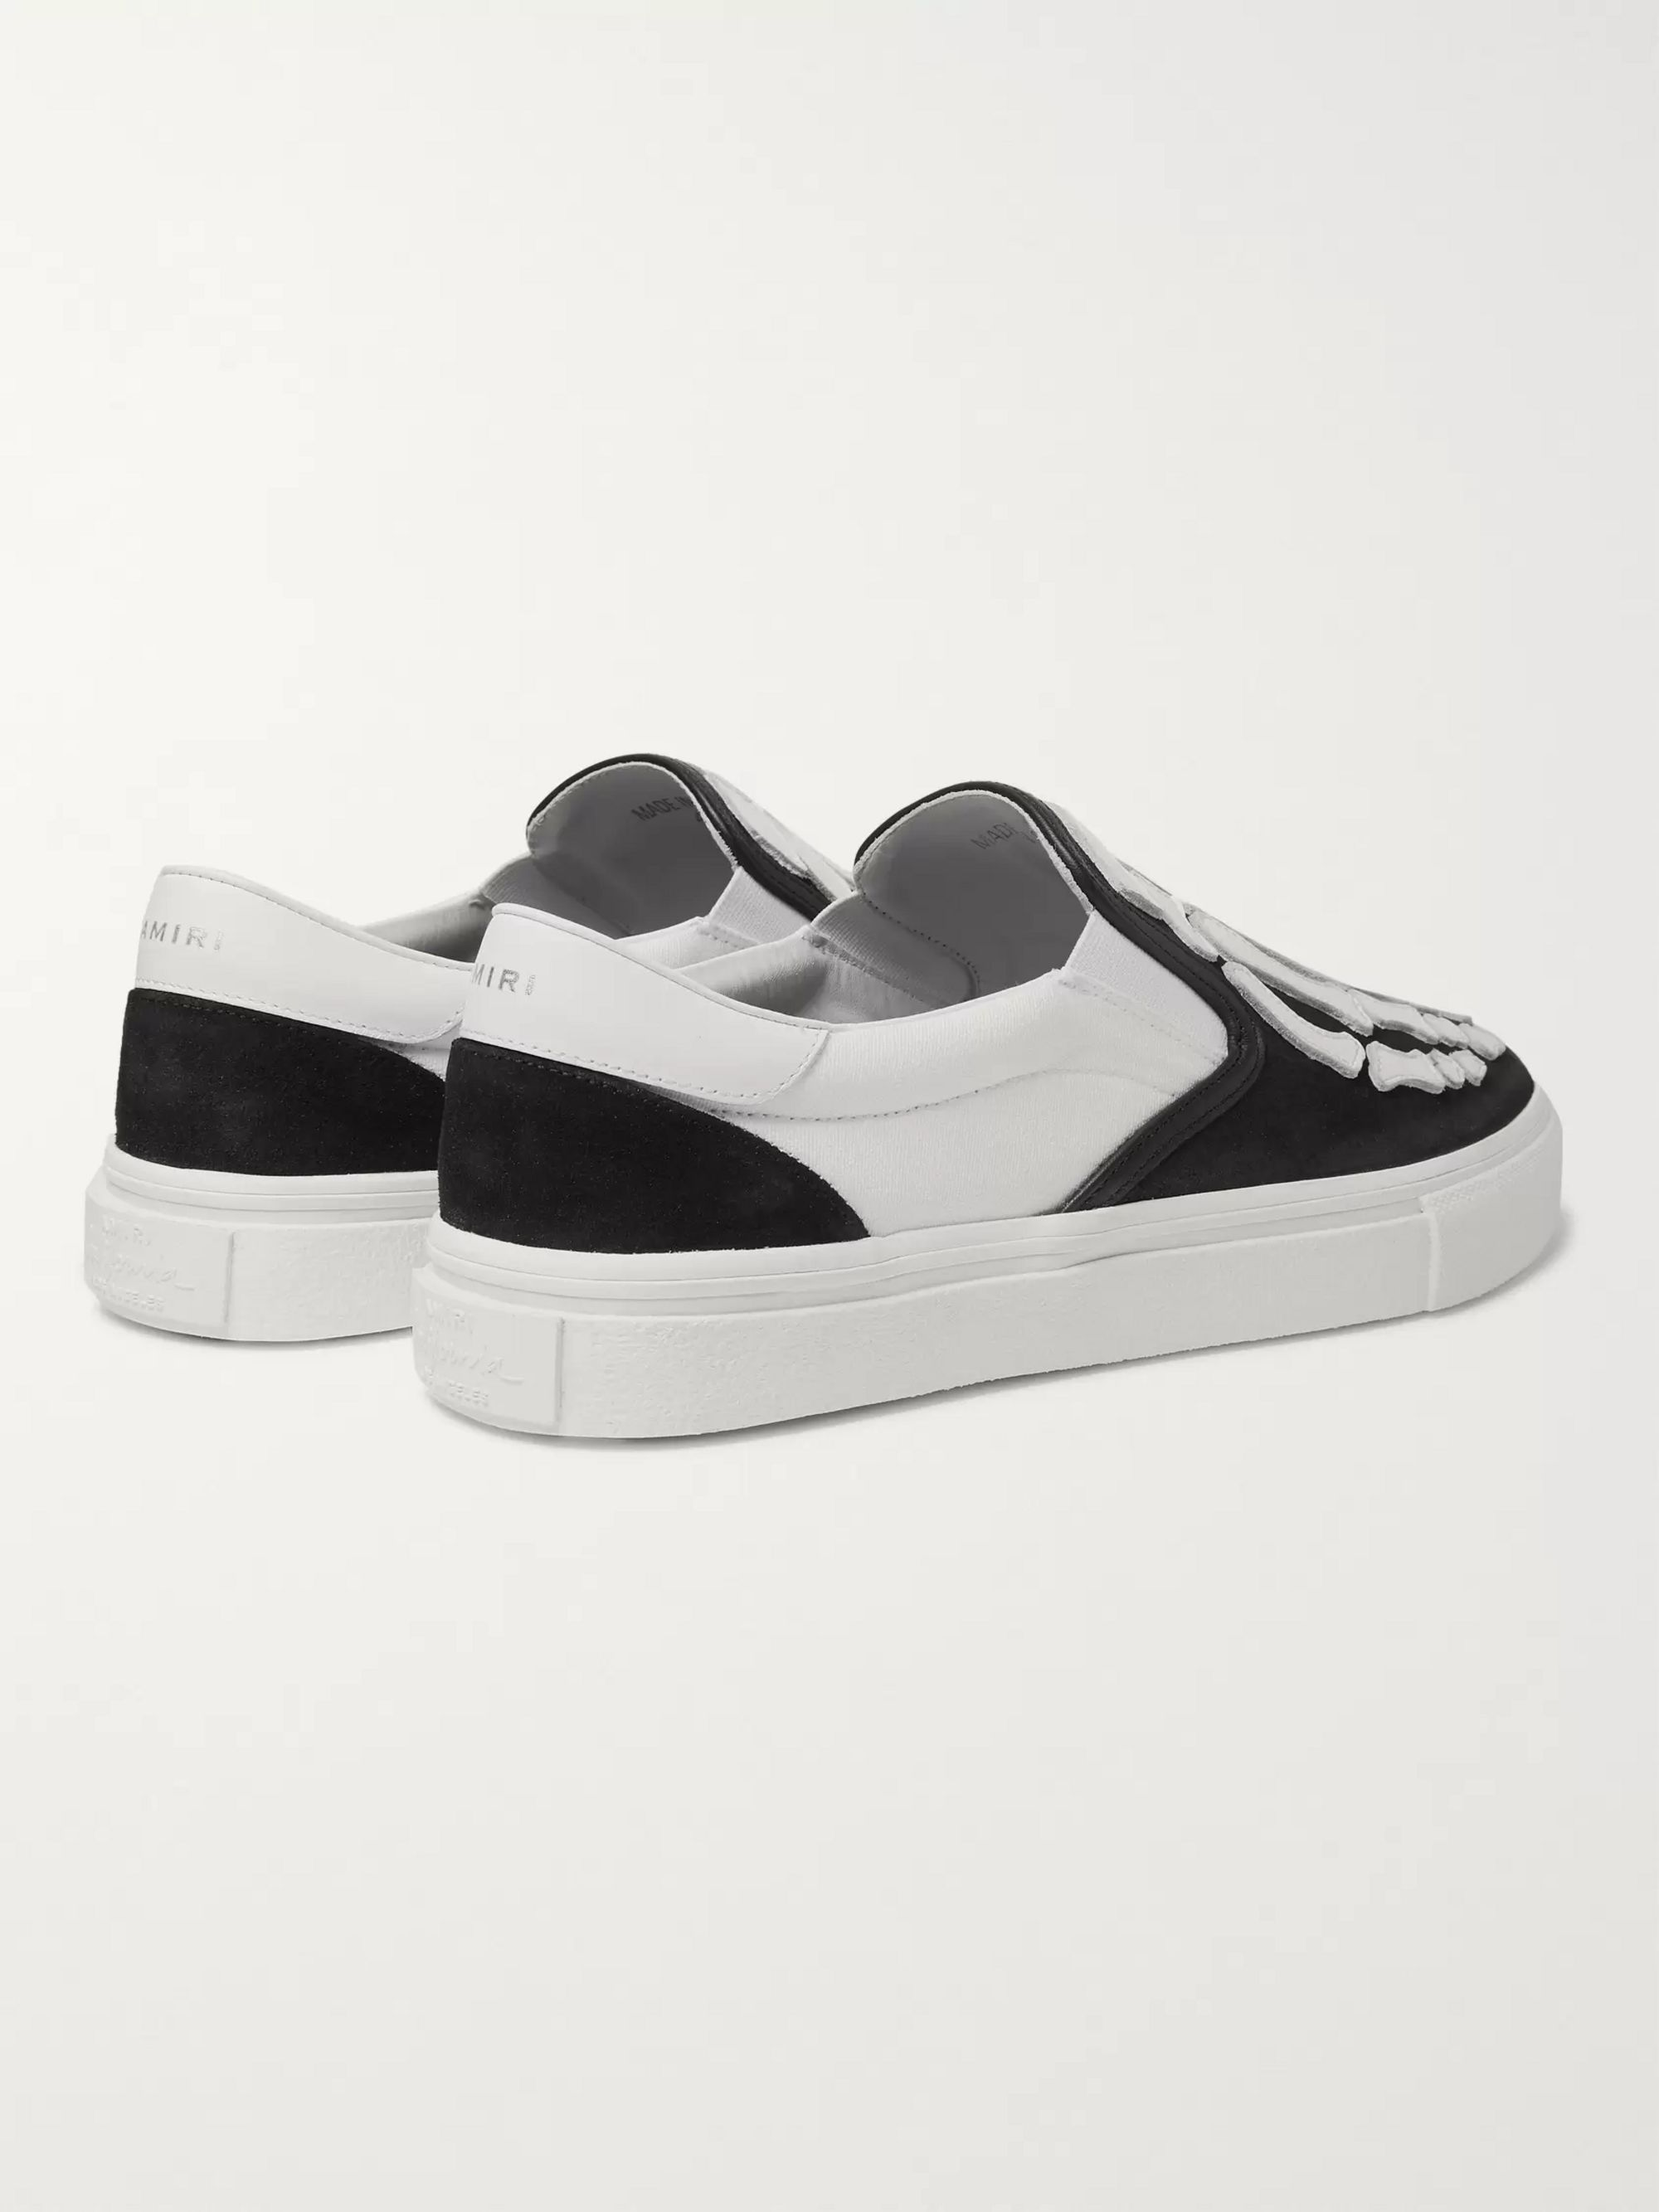 AMIRI Skel Toe Leather-Appliquéd Canvas and Suede Slip-On Sneakers